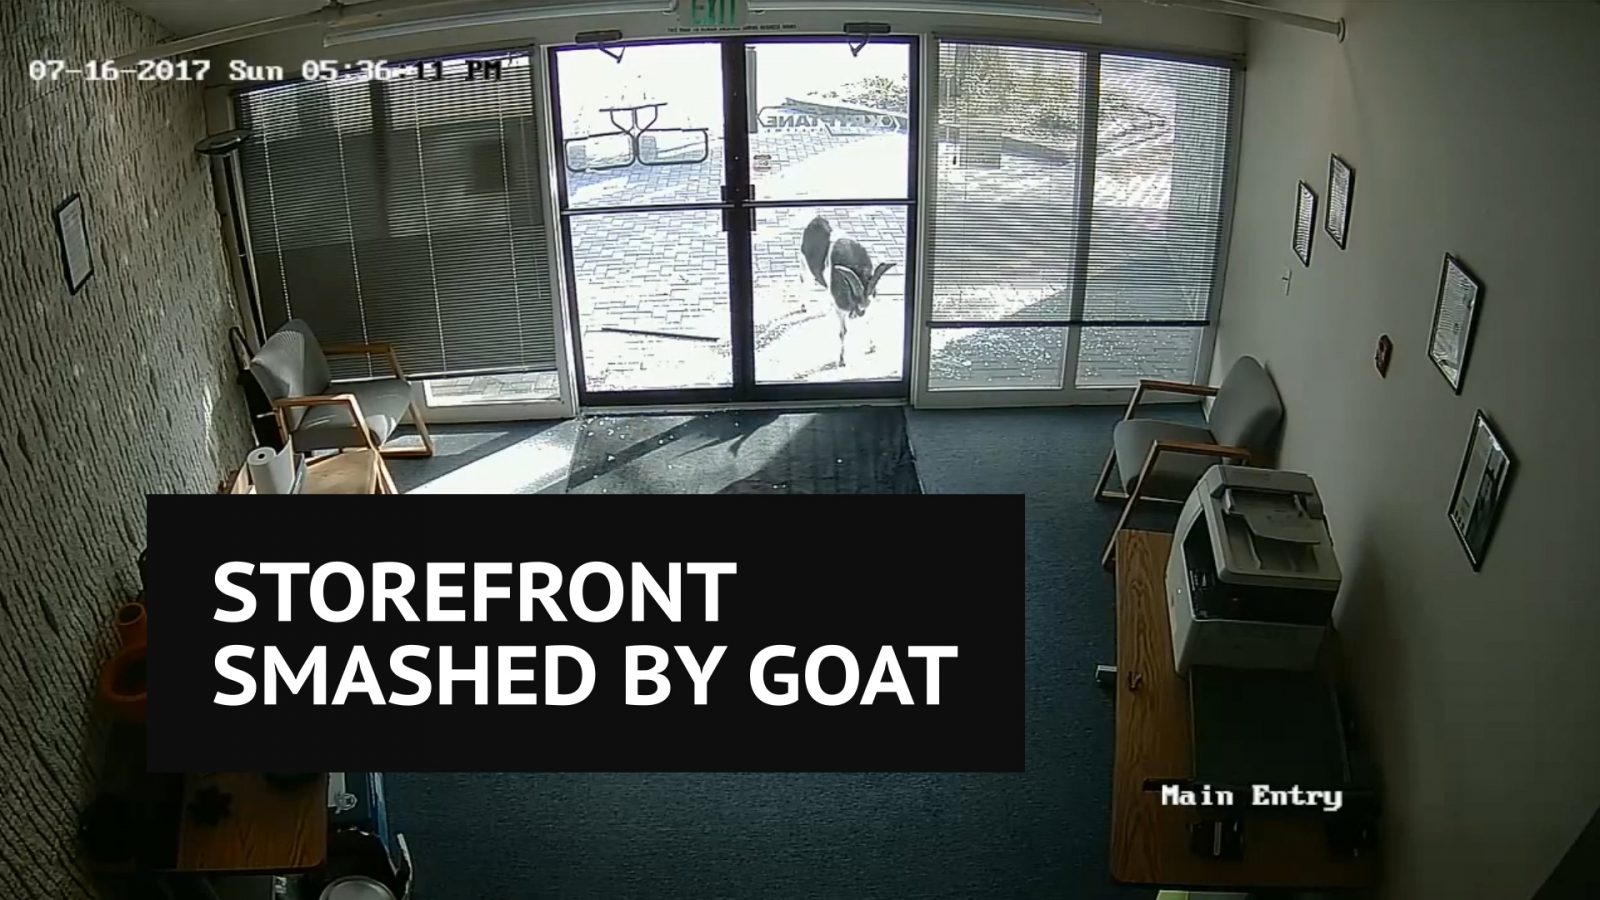 Hilarious video shows goat attacking storefront with vengeance